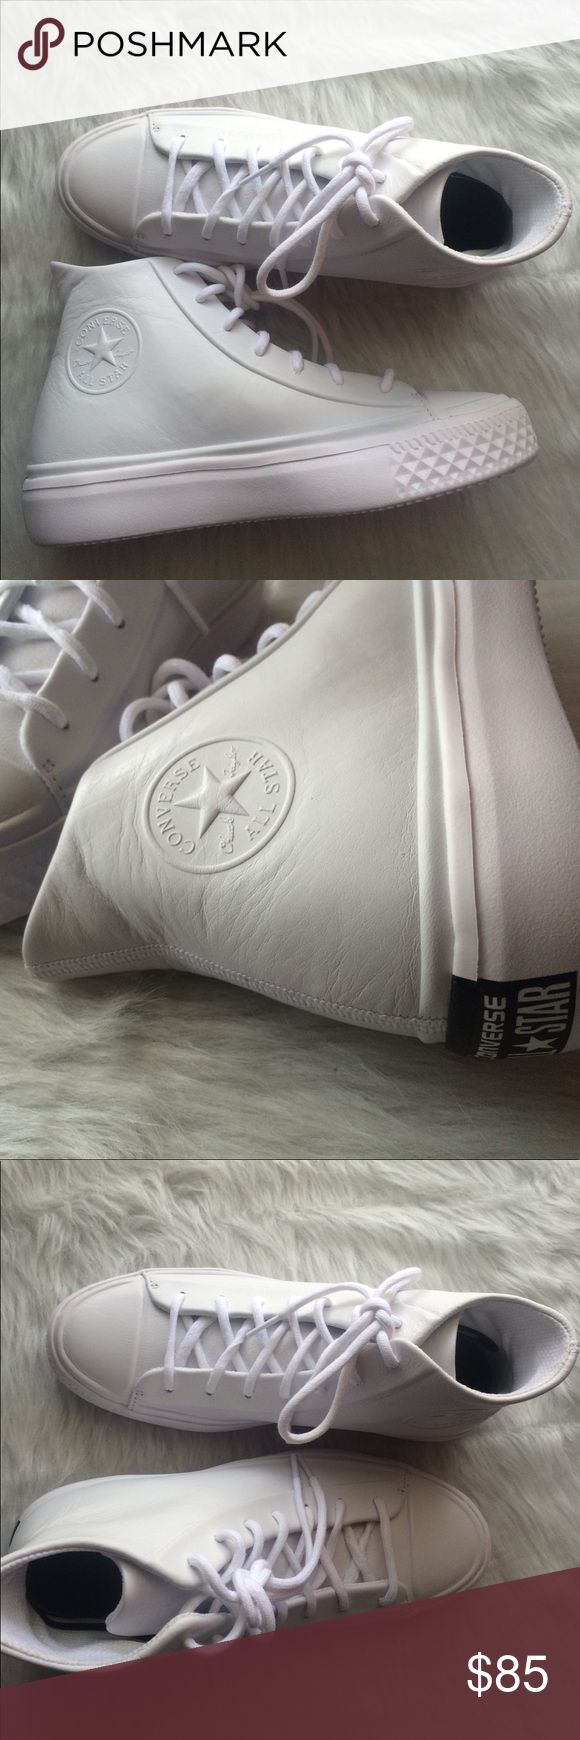 Converse modern all white leather hi tops shoes Brand new Converse Shoes Sneakers